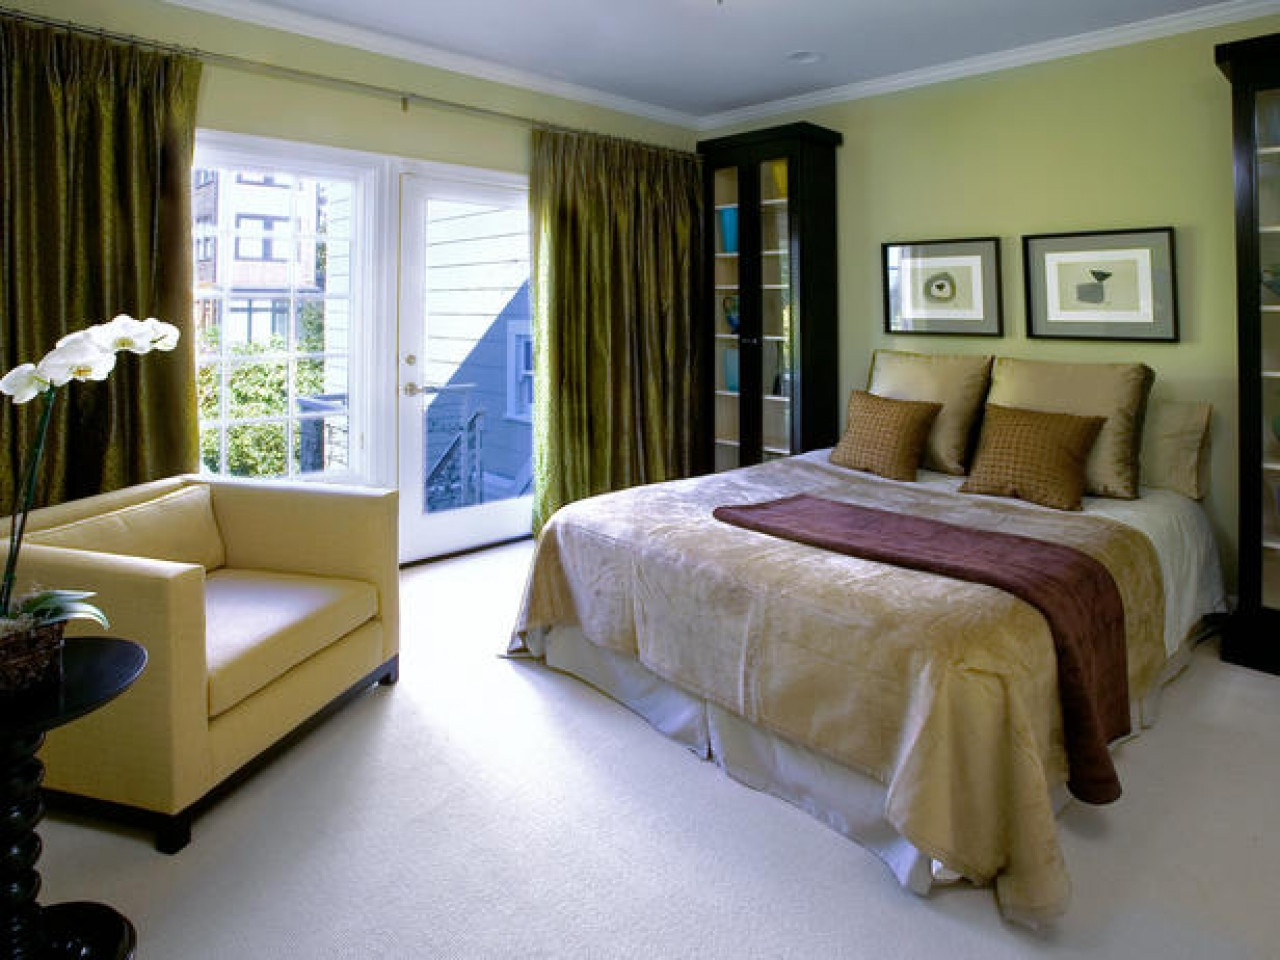 Best ideas about Paint Colors For Bedroom . Save or Pin Sage dining rooms calming bedroom paint colors bedroom Now.